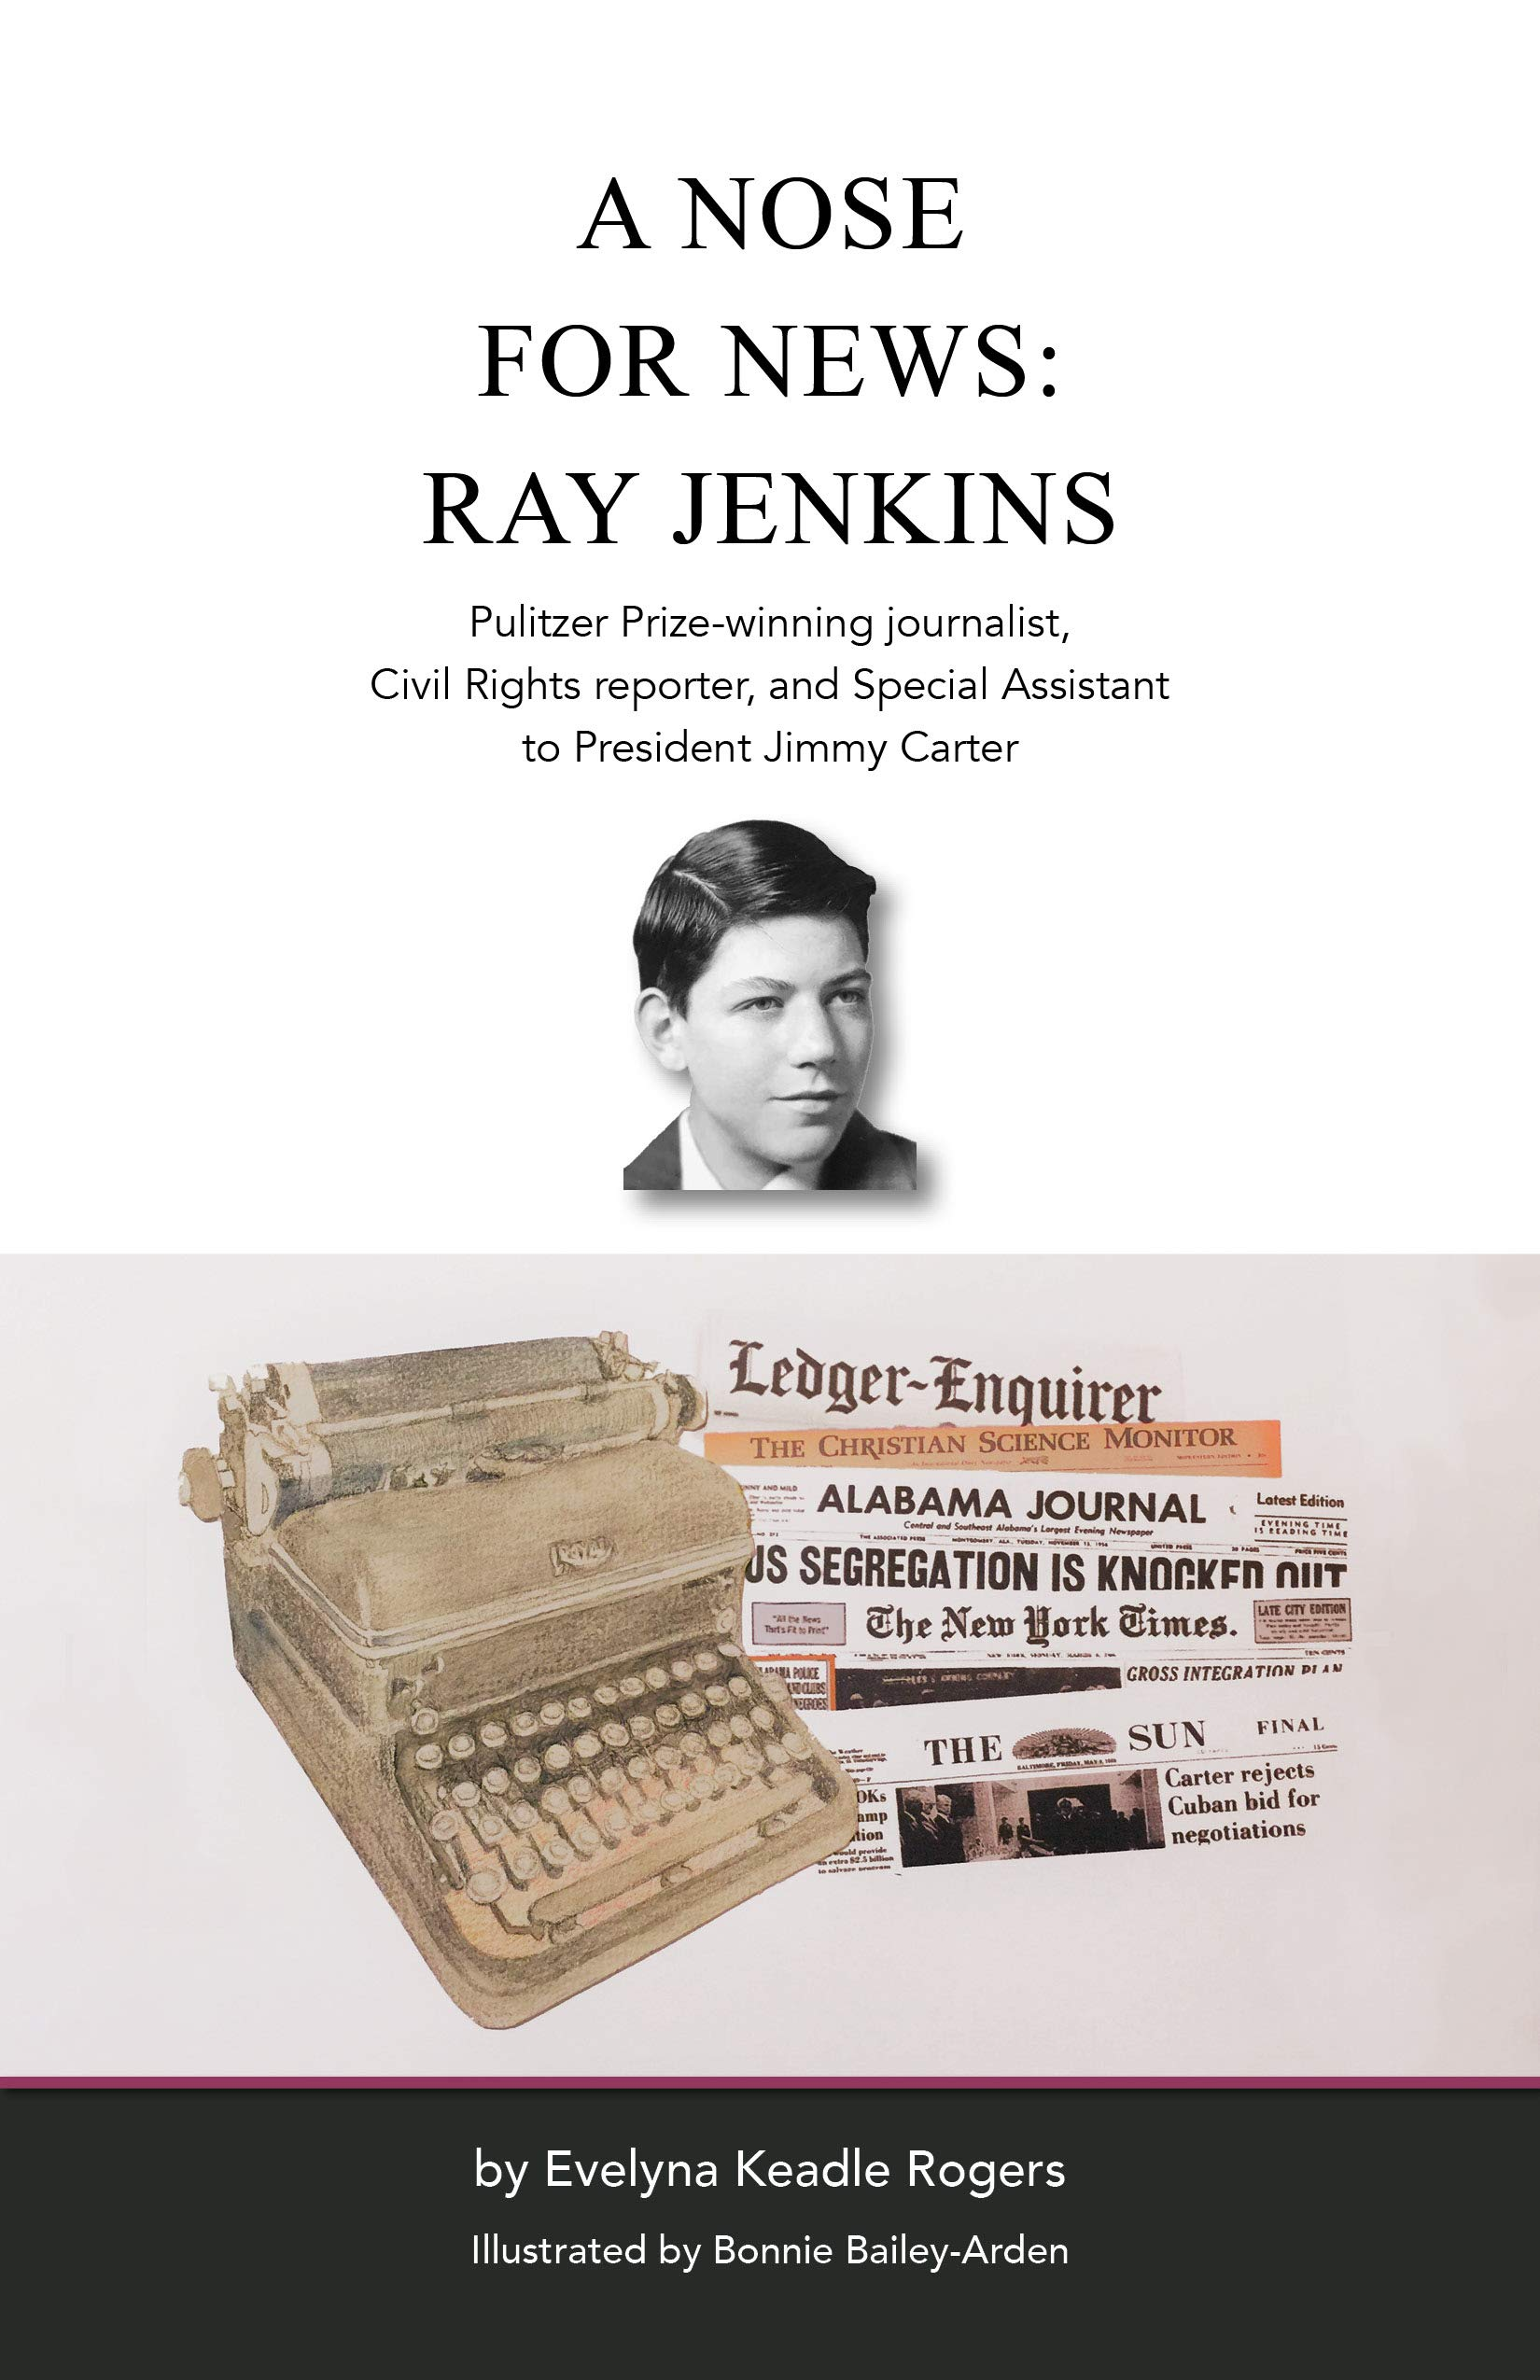 A Nose for News: Ray Jenkins, Pulitzer Prize-winning journalist, Civil Rights reporter, and Special Assistant to President Jimmy Carter